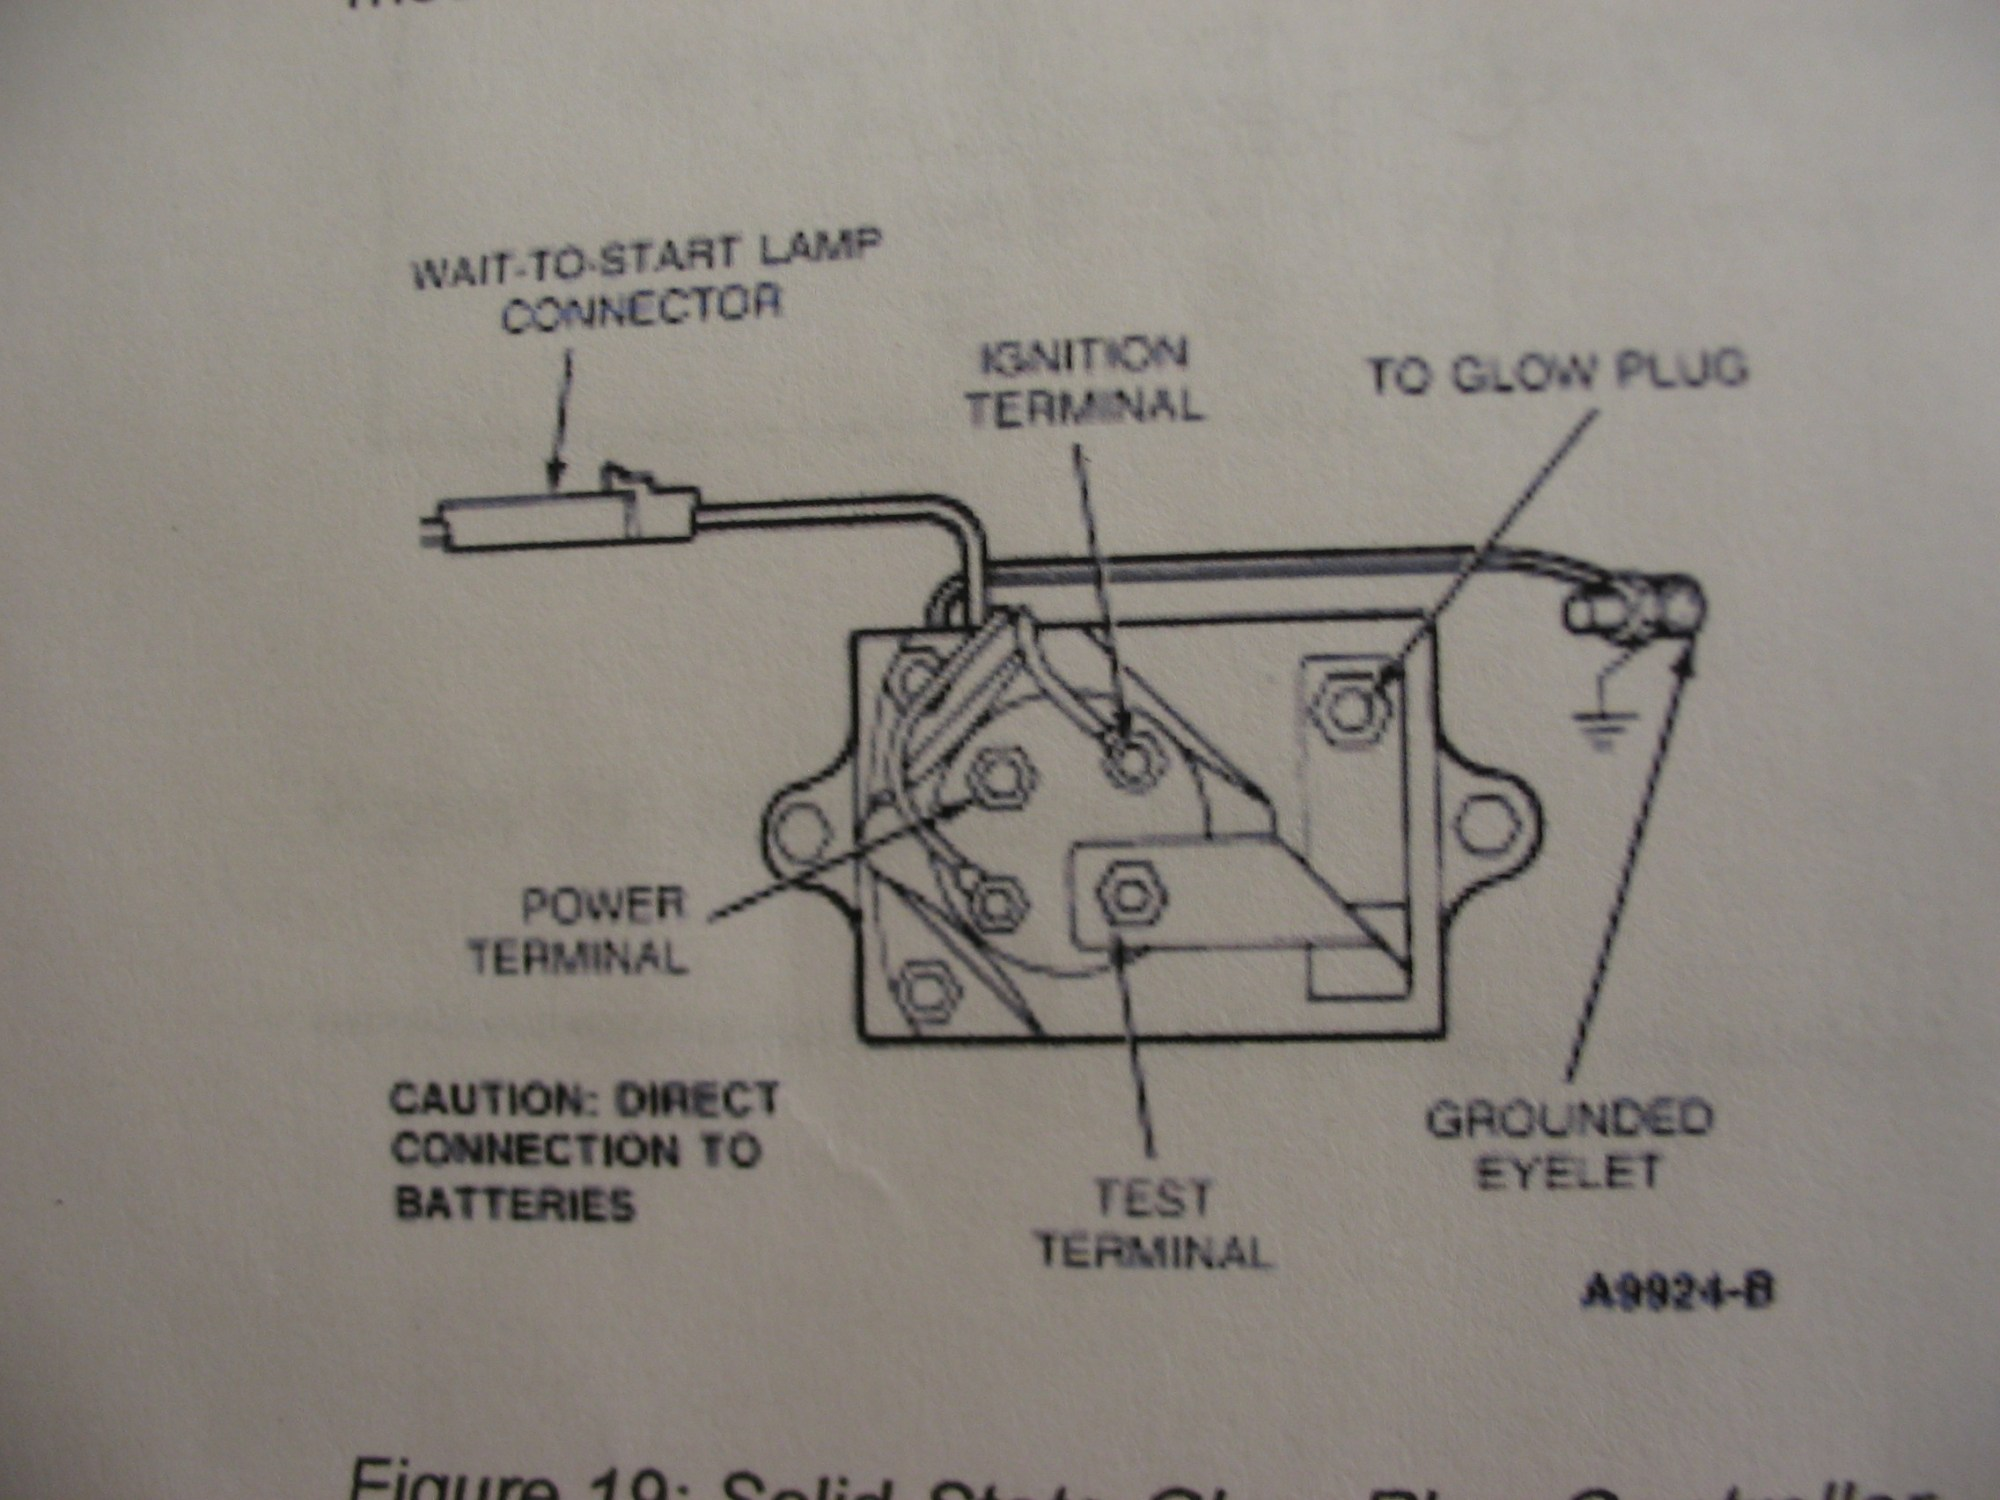 hight resolution of ford 7 3 glow plug relay wiring diagram wiring diagram blog1997 ford 7 3 glow plug wiring diagram wiring diagram post ford 7 3 glow plug relay wiring